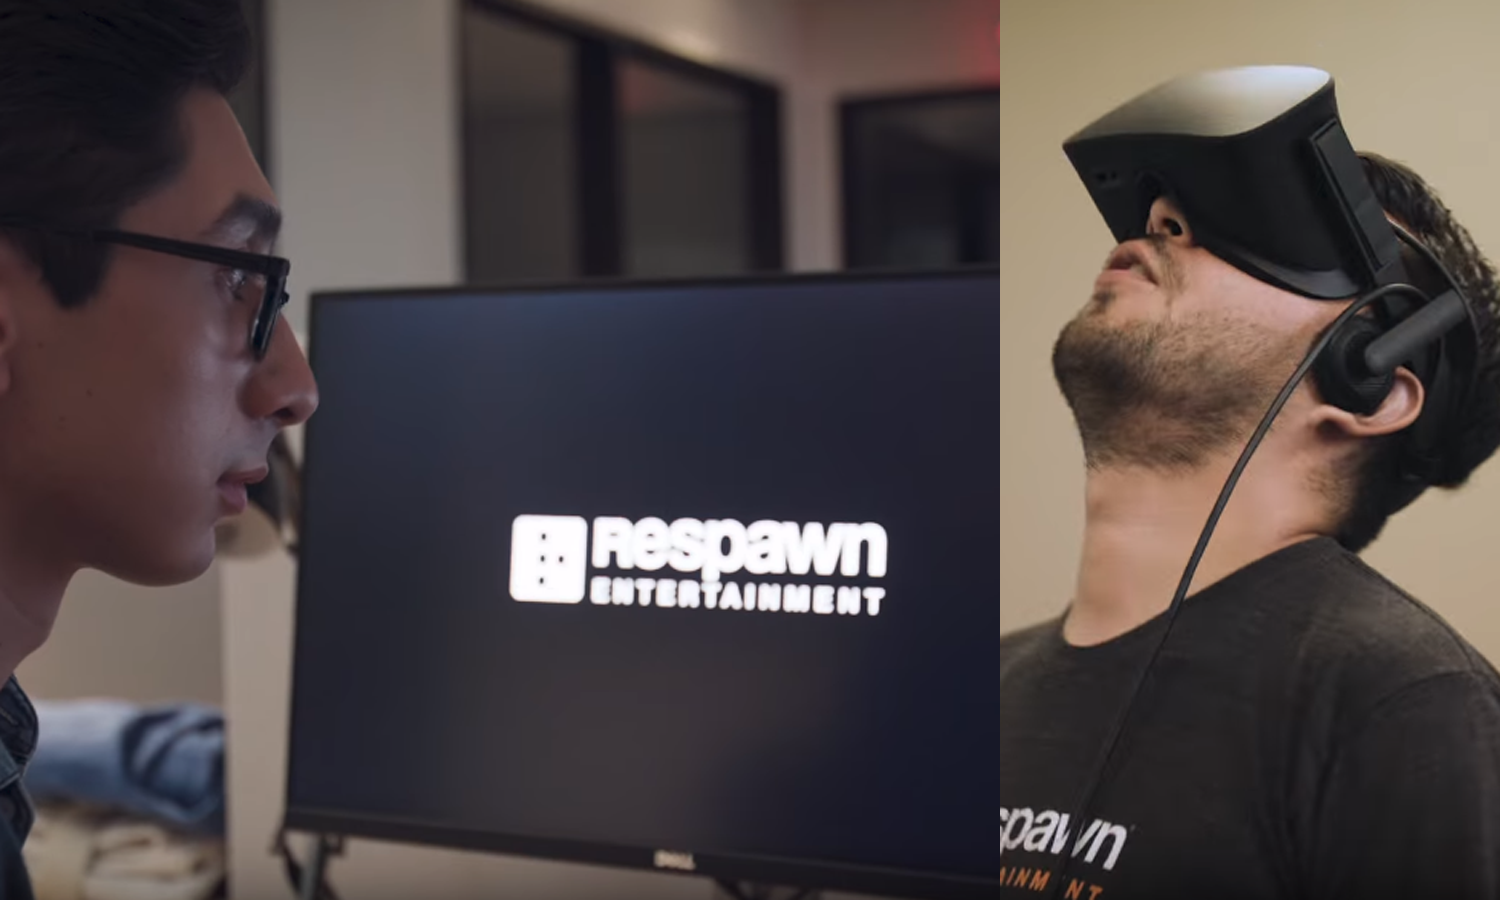 Titanfall Dev Respawn Announces Oculus Rift VR Game